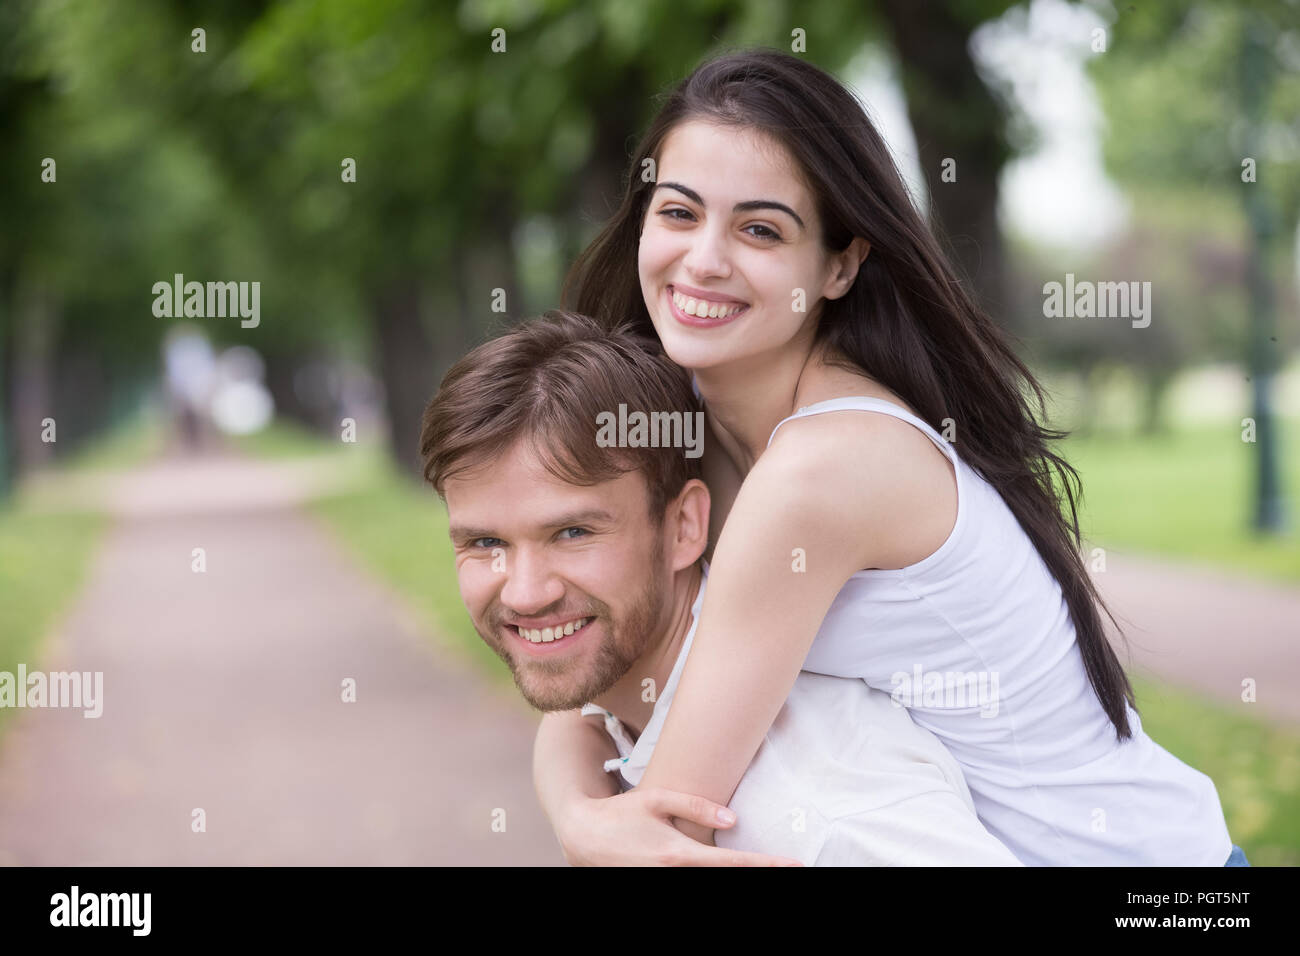 Portrait of smiling young girlfriend piggyback millennial boyfri Photo Stock